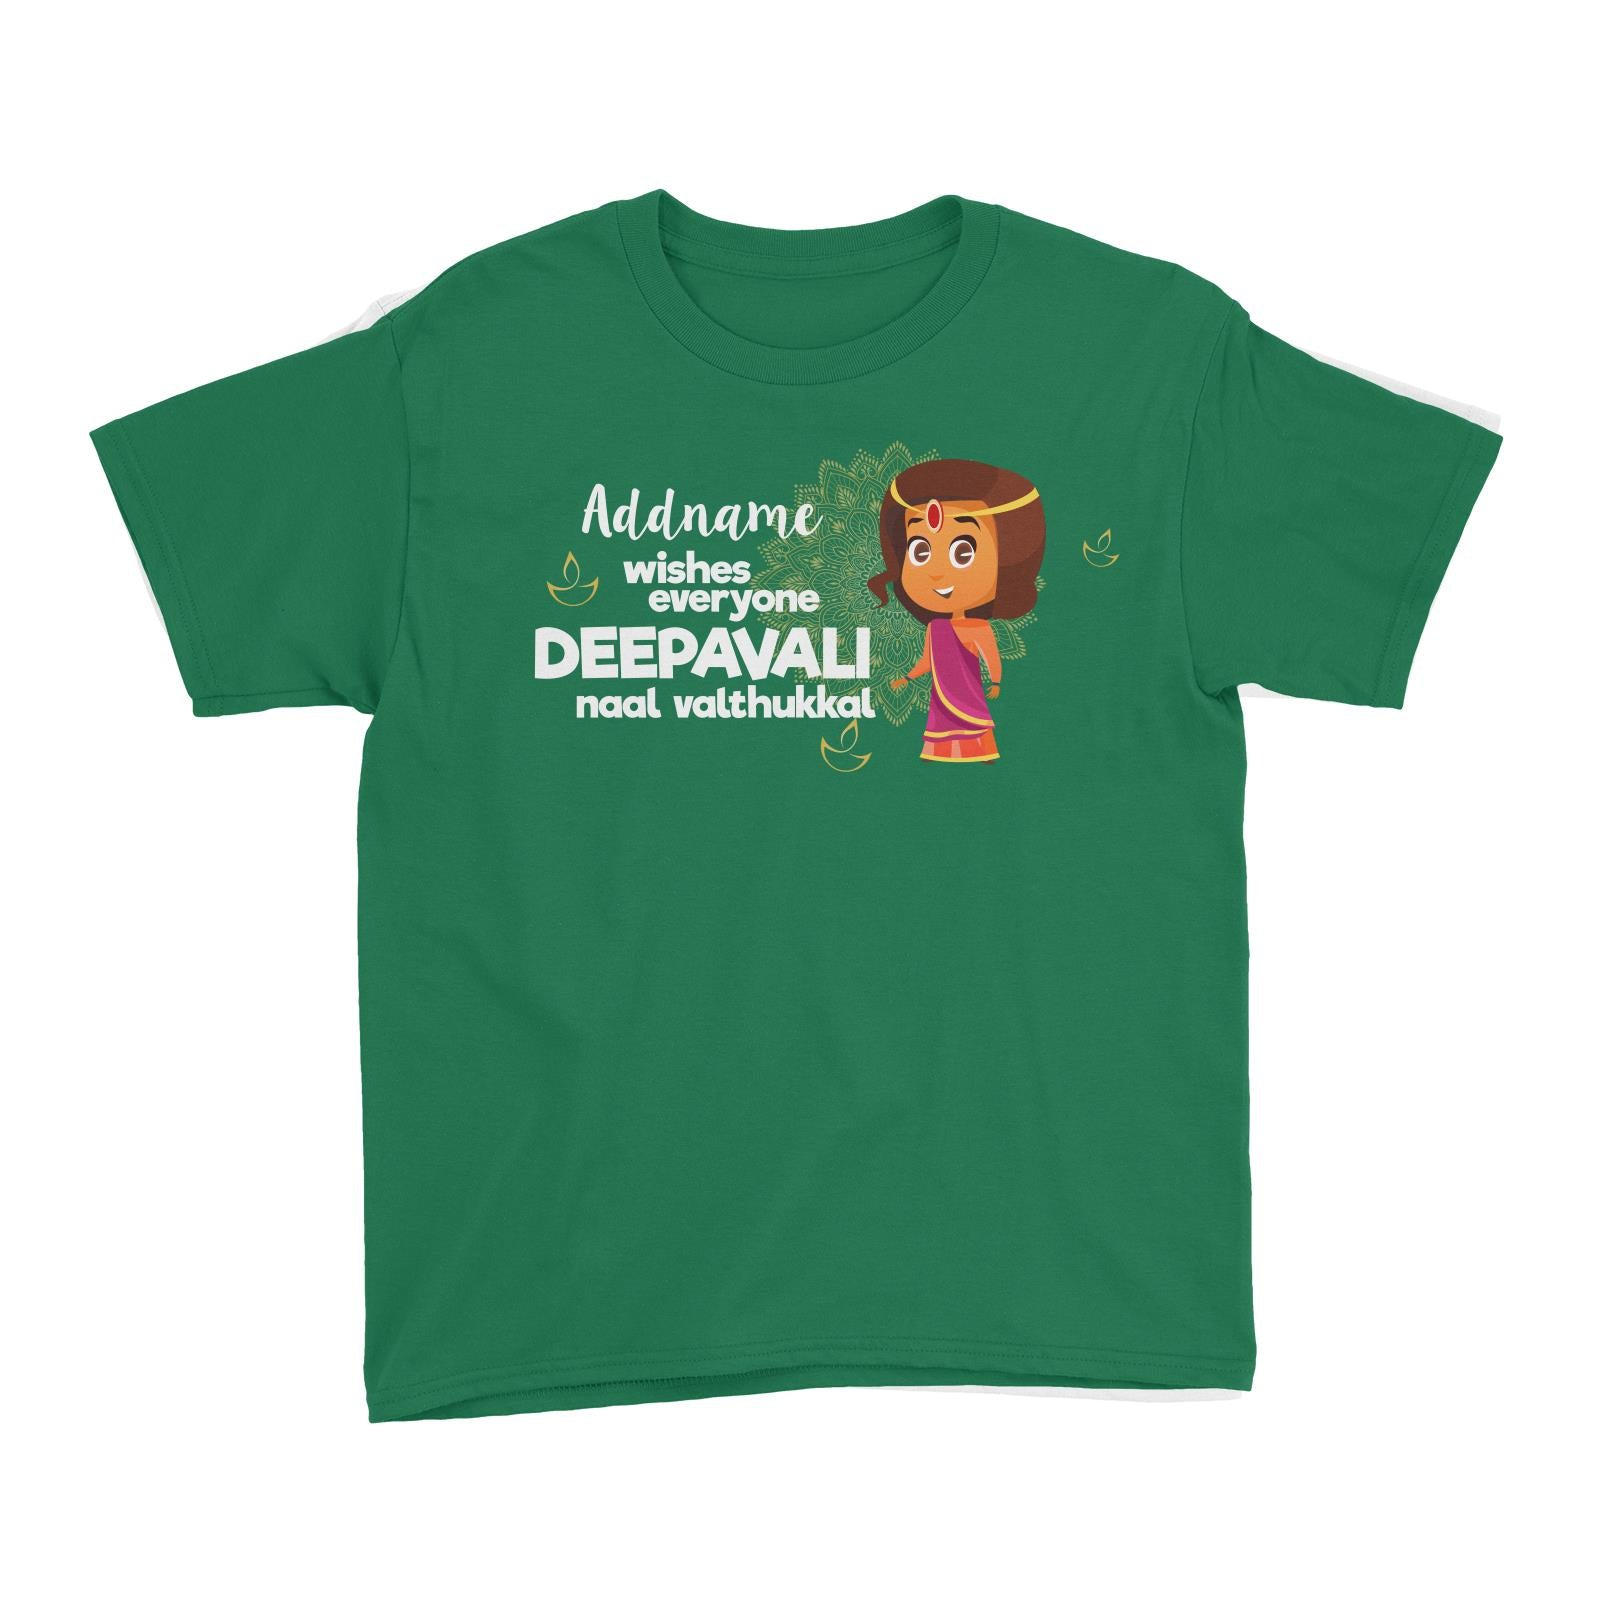 Cute Girl Wishes Everyone Deepavali Addname Kid's T-Shirt